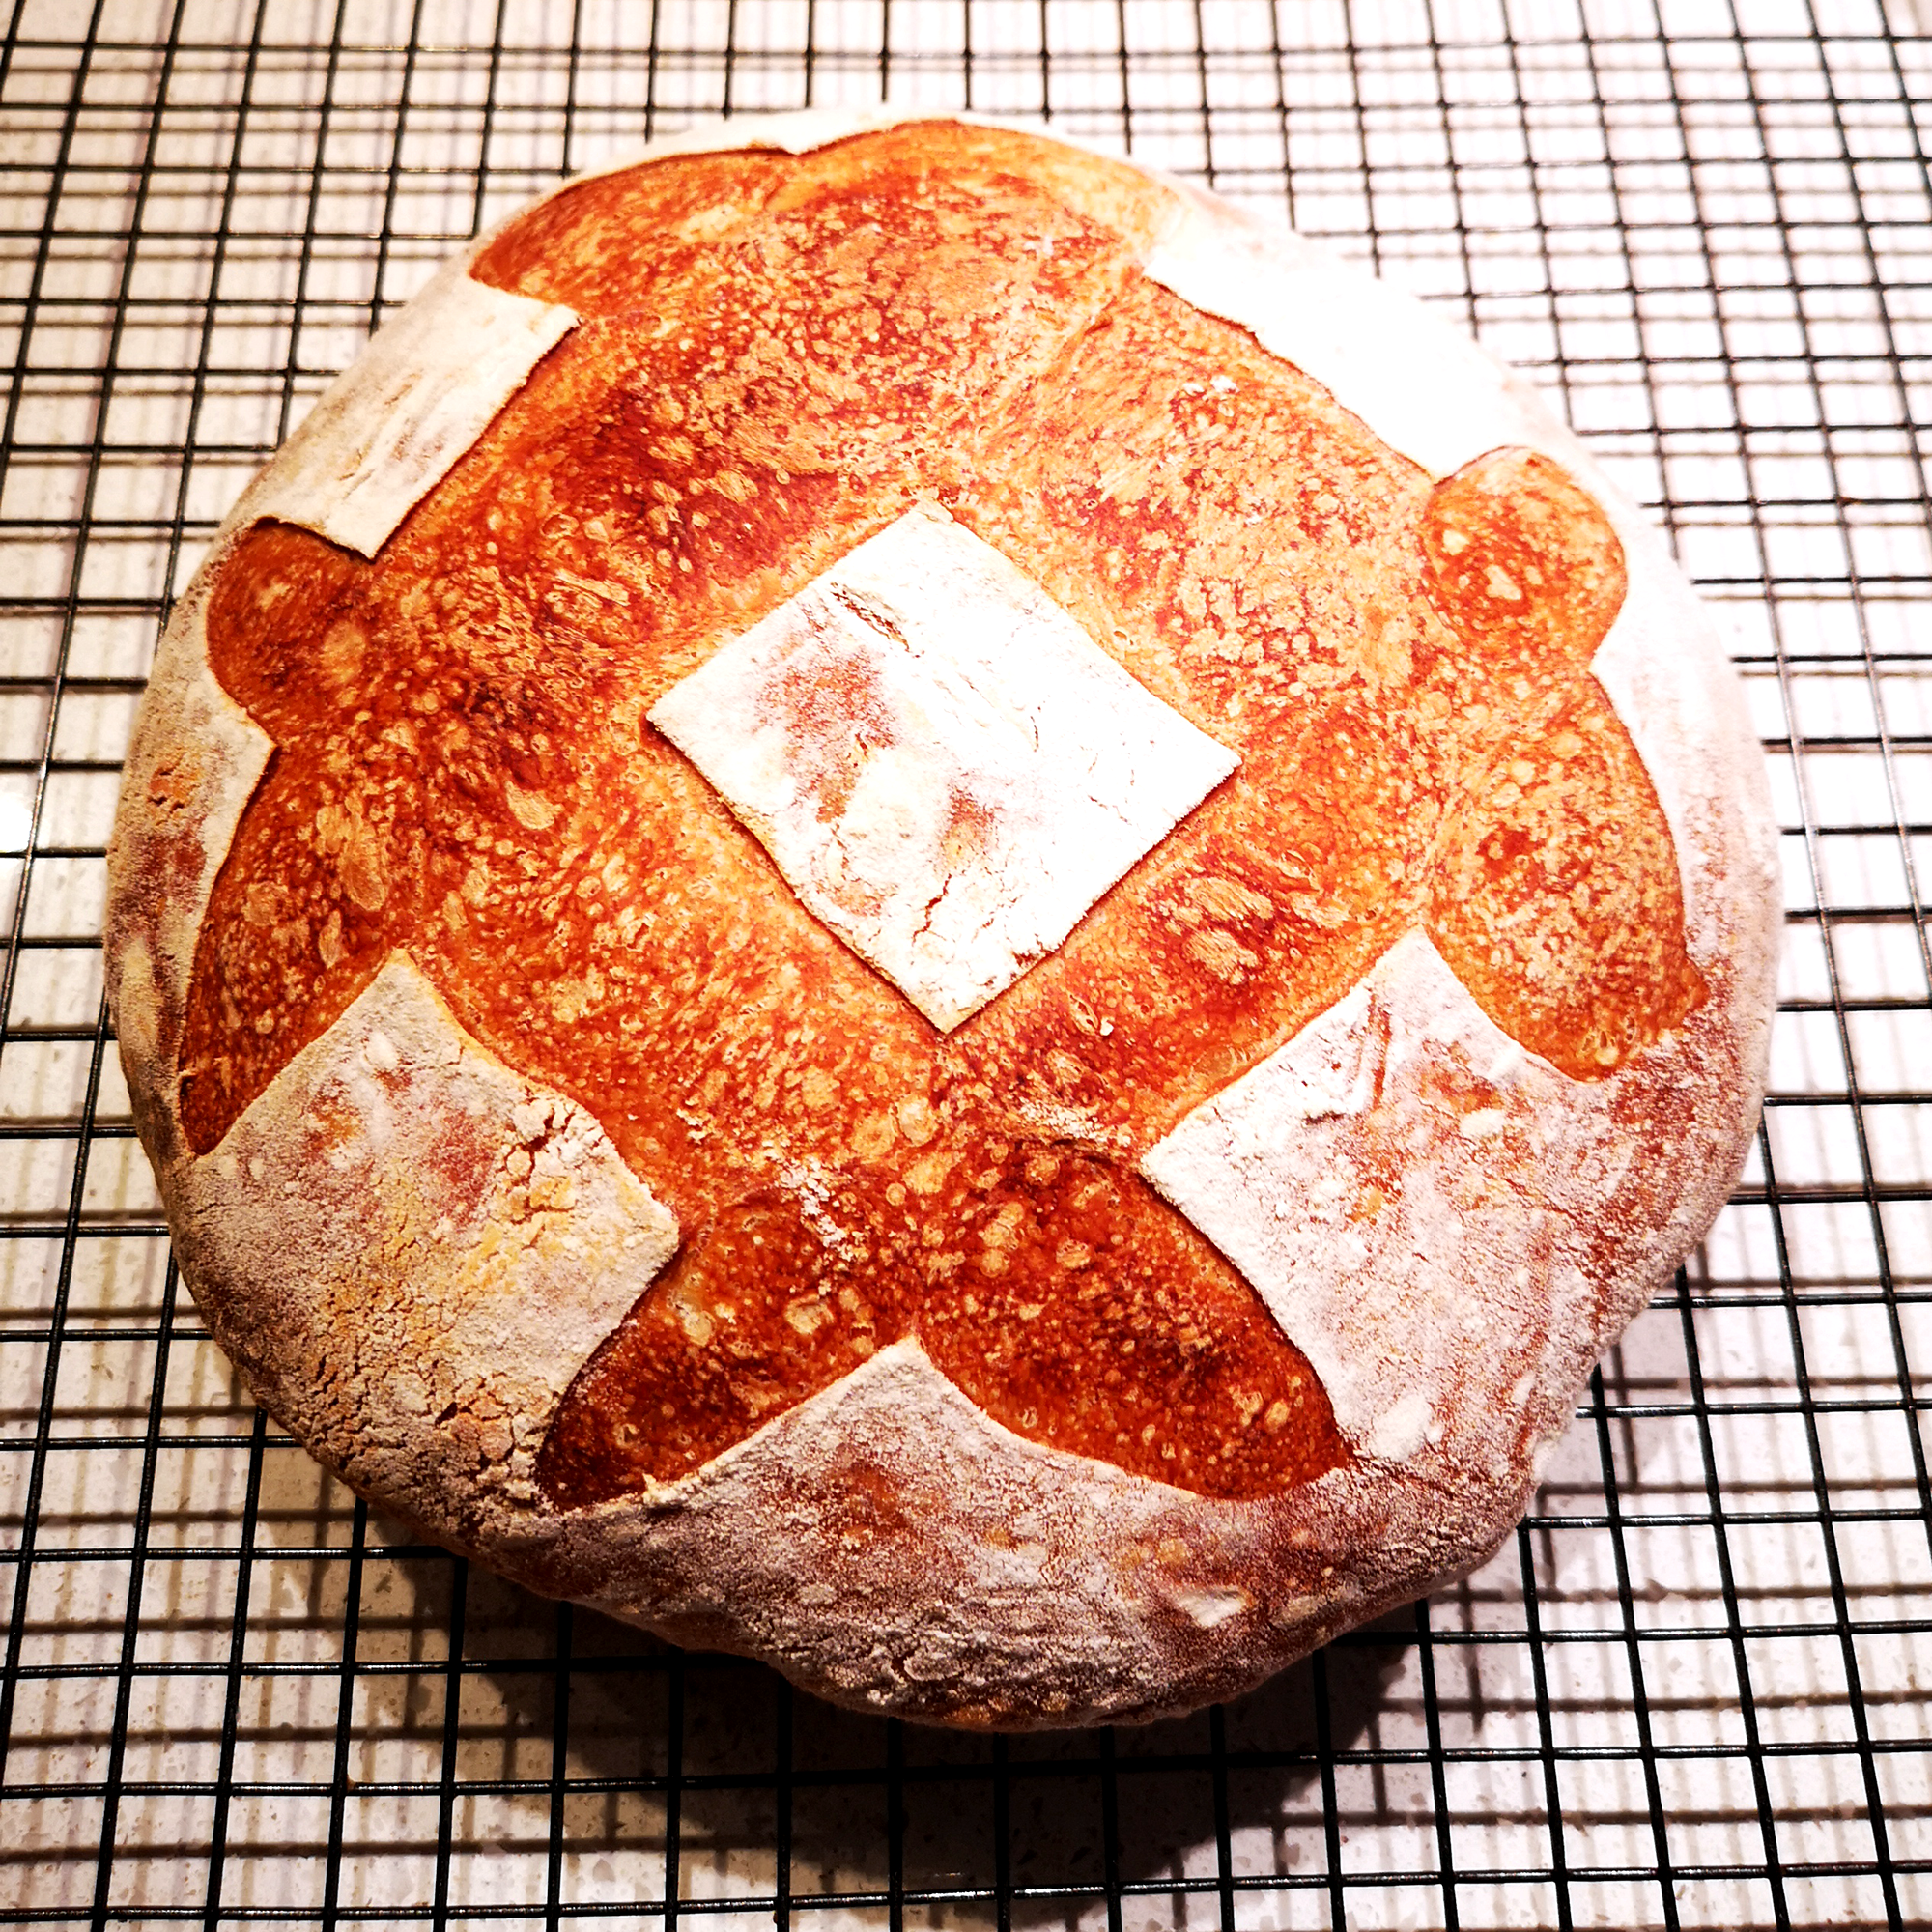 Sourdough loaf with scoring